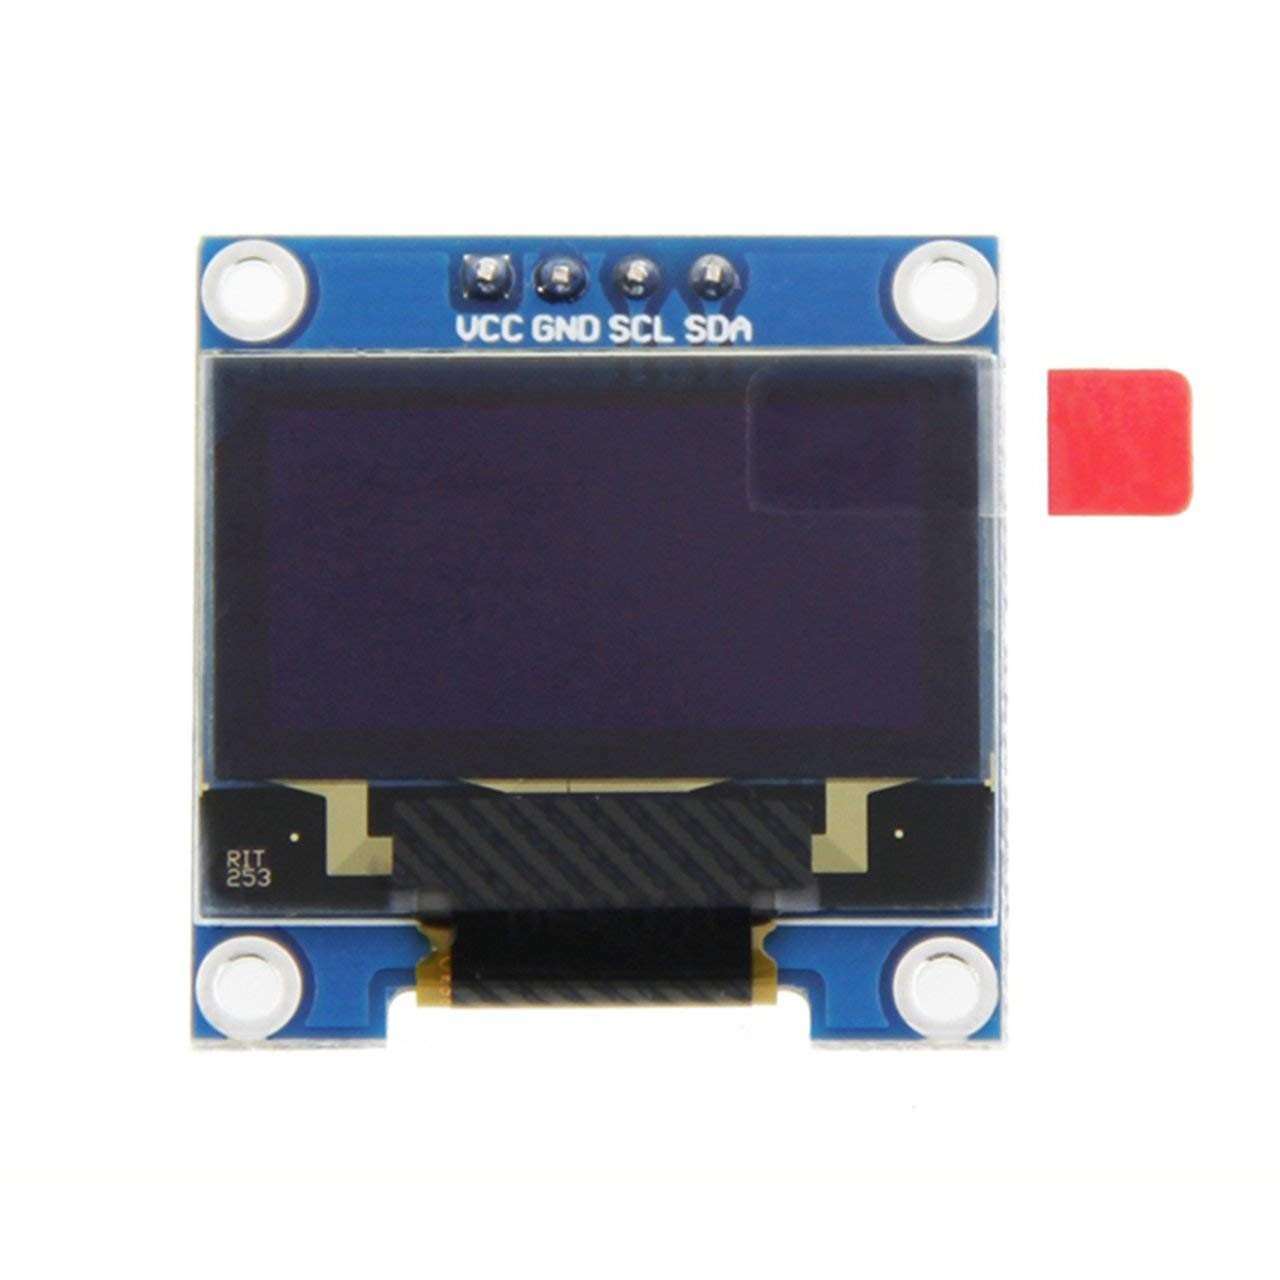 Yellow/&Blue 64 0.96inch Color LCD Display Module with Large Viewing Angle Driver IC SSD1306 0.96inch OLED LCD Resolution 128 Jasnyfall